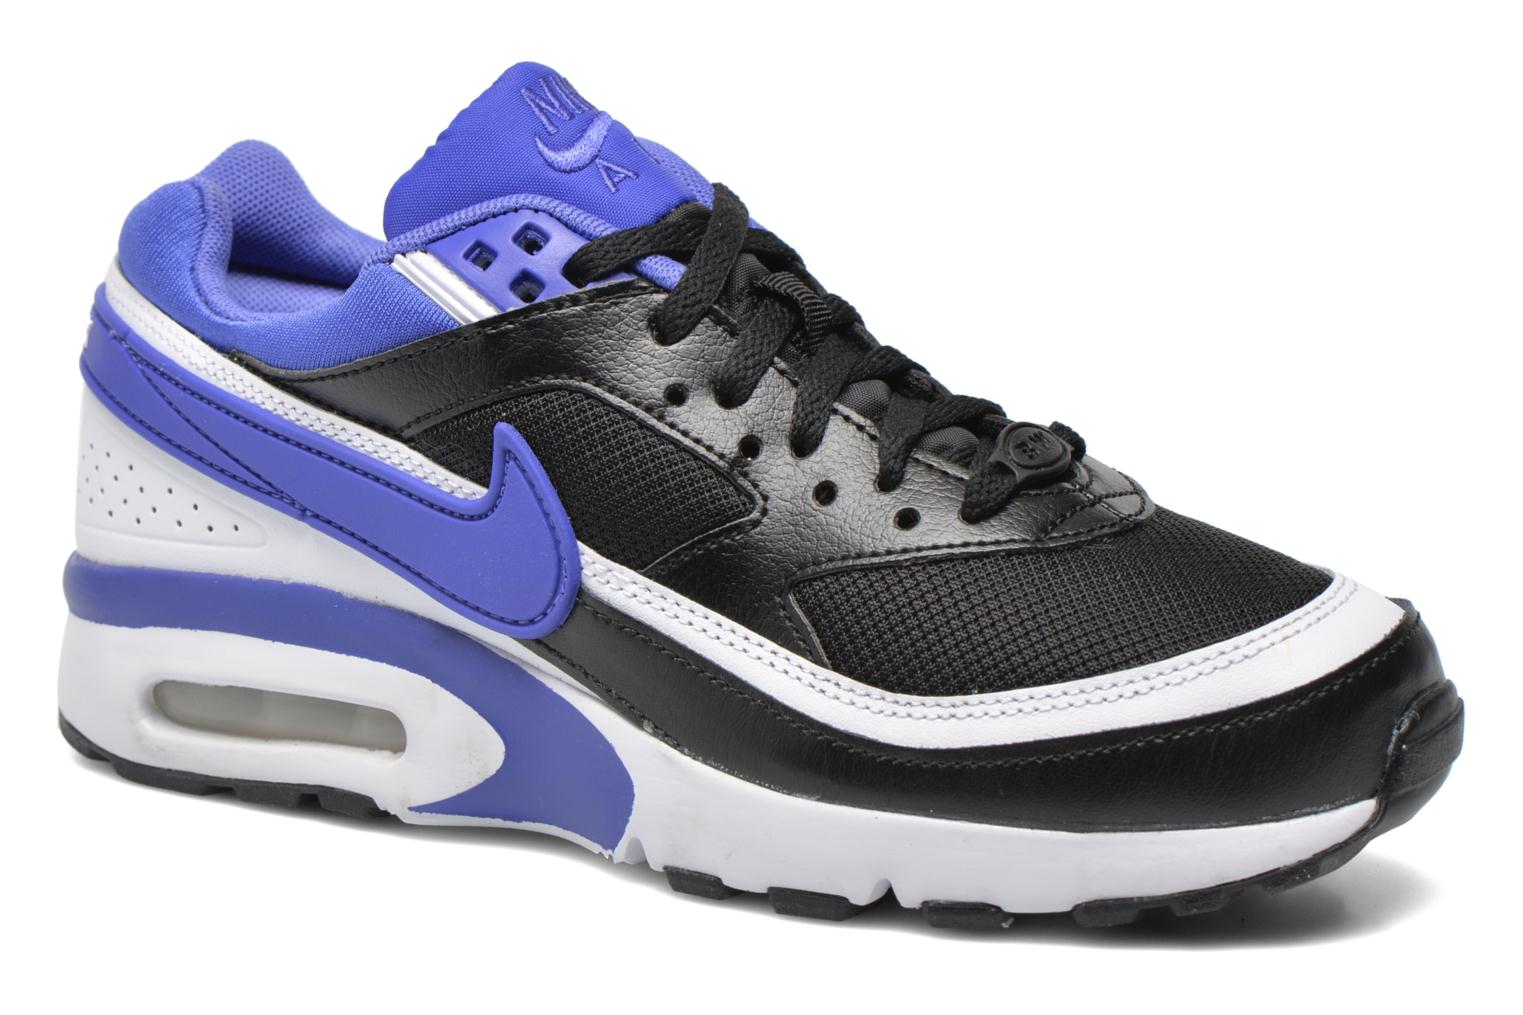 AIR MAX BW Chica